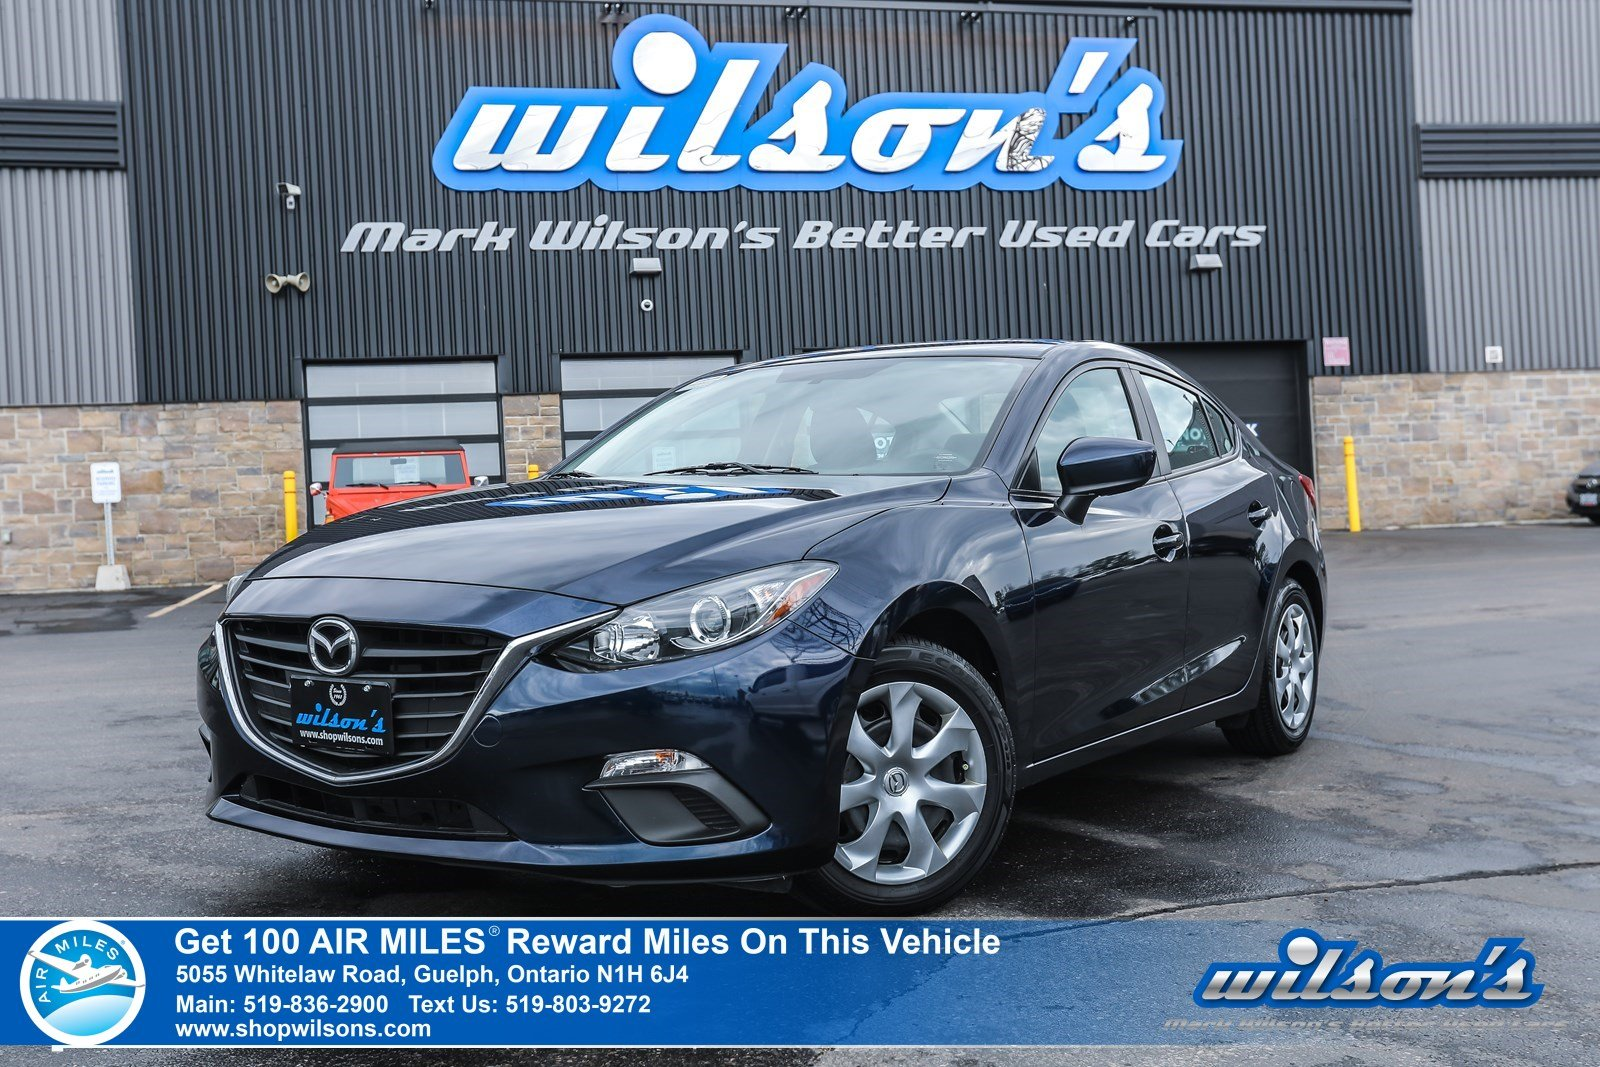 Certified Pre-Owned 2015 Mazda3 GX - LOW KM! Bluetooth, Steering Radio Controls, A/C, Push Start, Power Package and more!